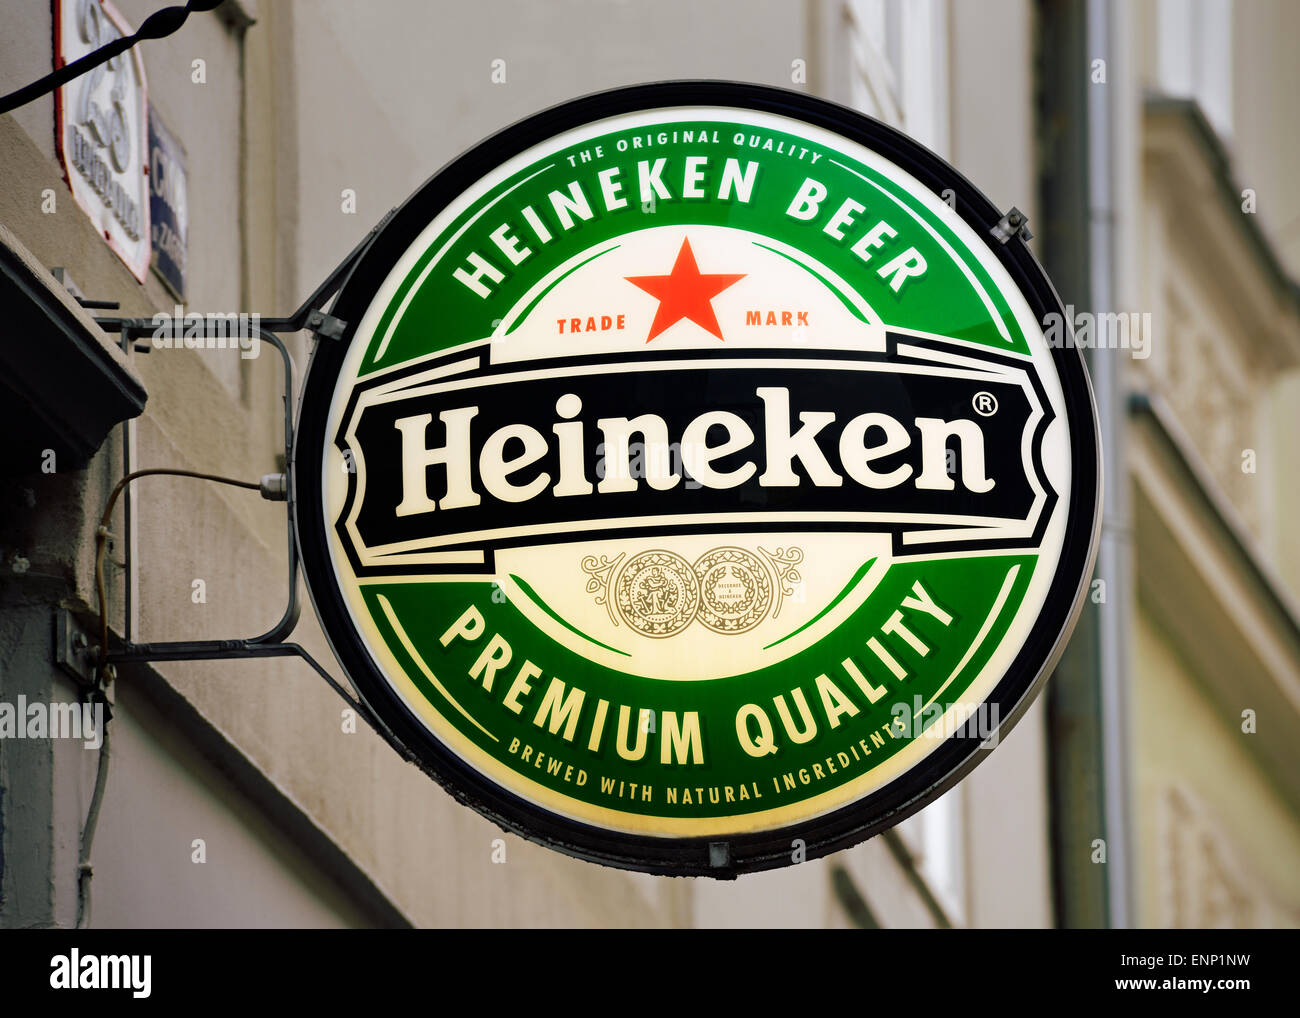 the adaptation of the marketing strategy of the heineken company Adaptation of product is a process or strategy of adapting or tailoring an otherwise standardized product or service offering to meet the needs and preferences of a particular market or set of consumers, where such markets and consumers are typically examined and managed within an international marketing context.